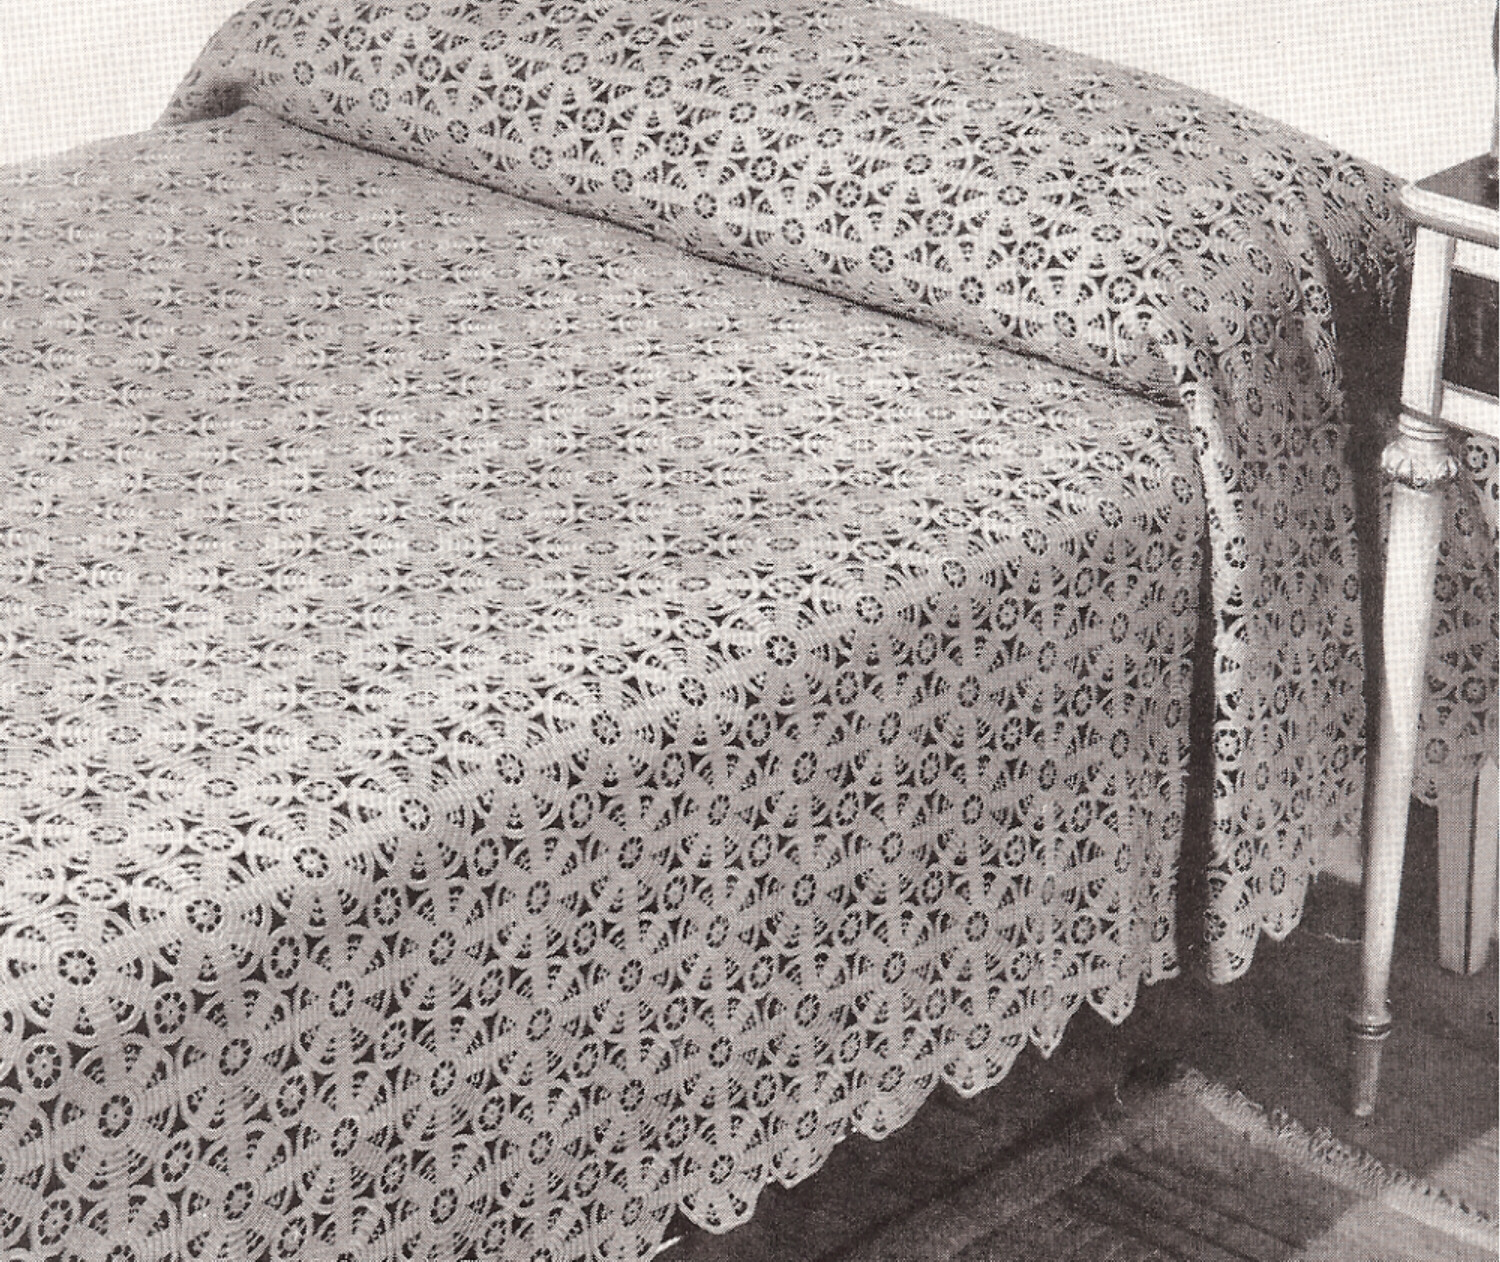 Crochet Bedspread : Vintage Crochet MOTIF BLOCK Bedspread Magic Pattern eBay